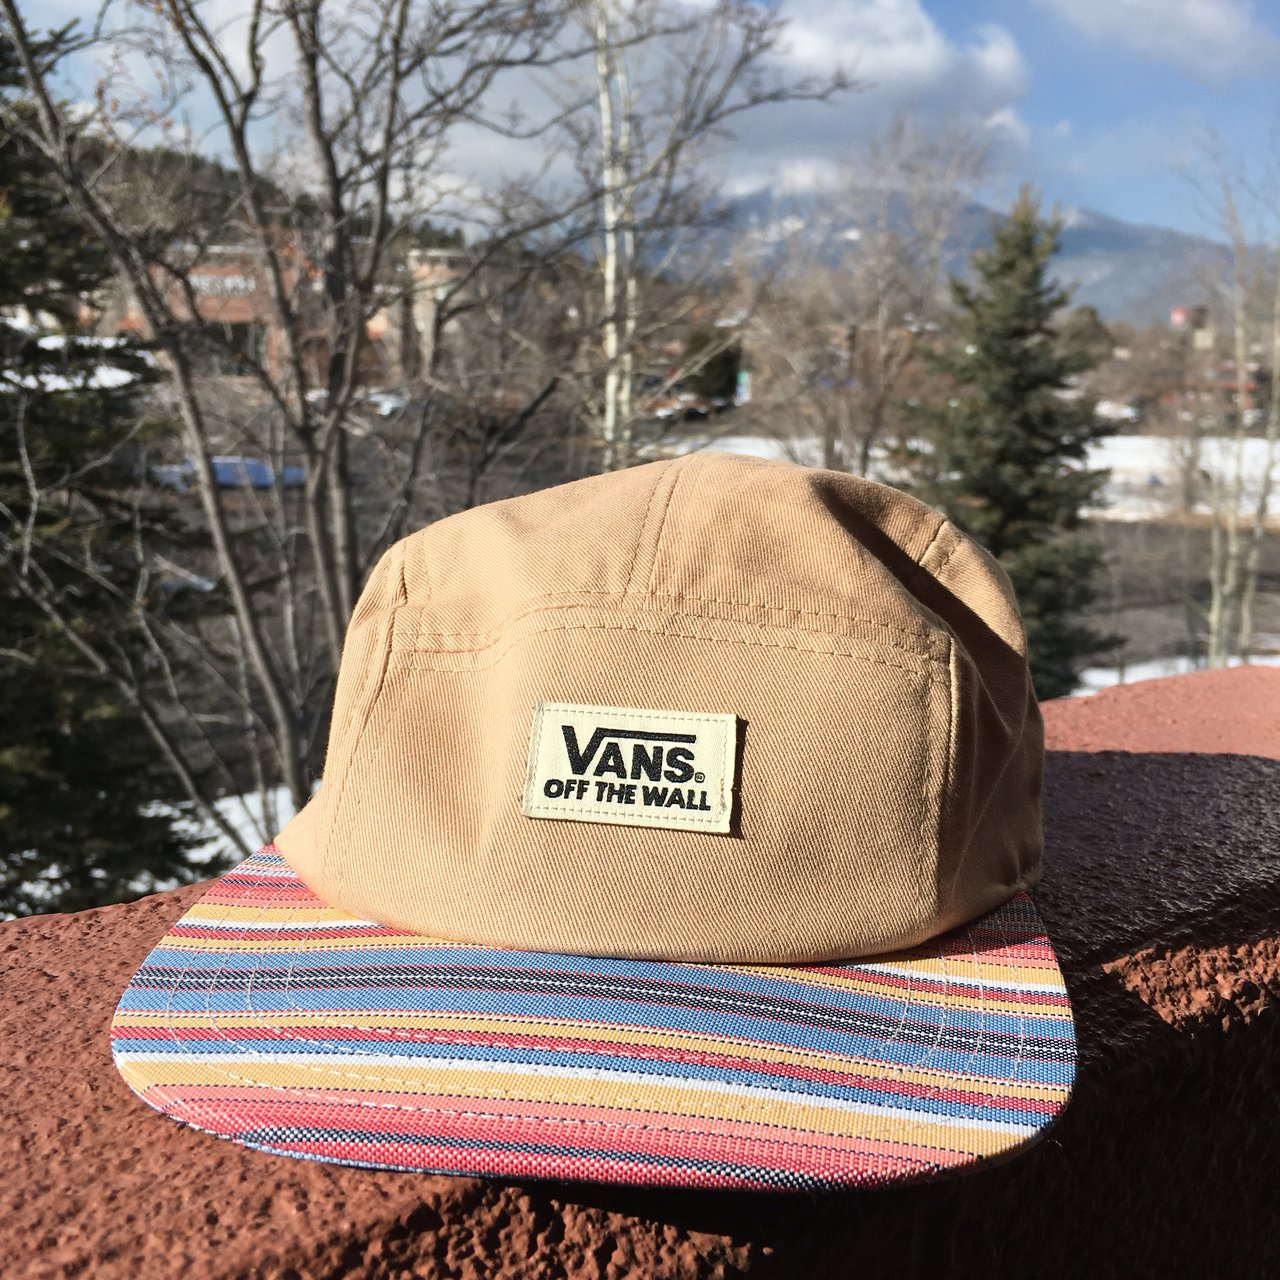 80a98f23705 Vans Off The Wall  5 Panel Tribal Print and Tan Hat !  vans - Depop